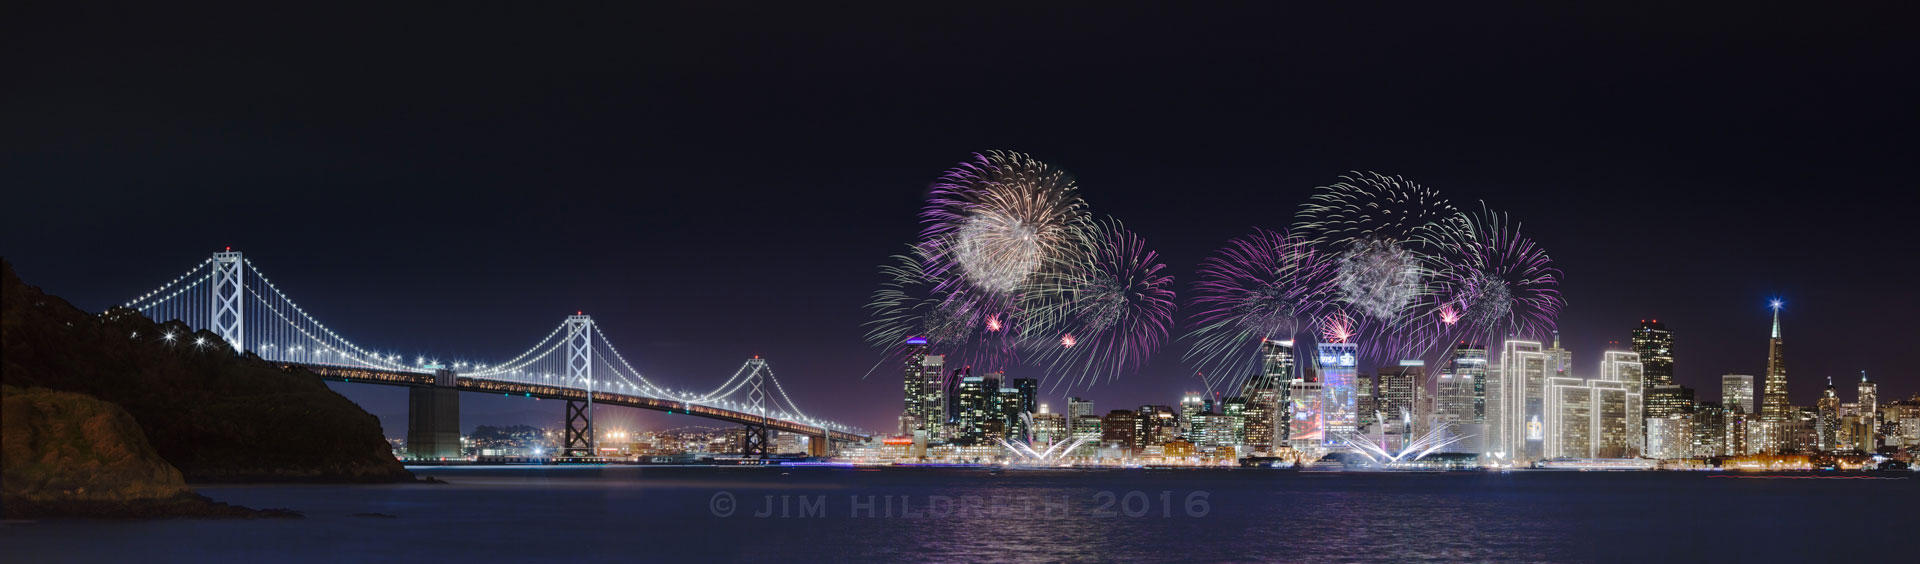 Superbowl 50 Fireworks